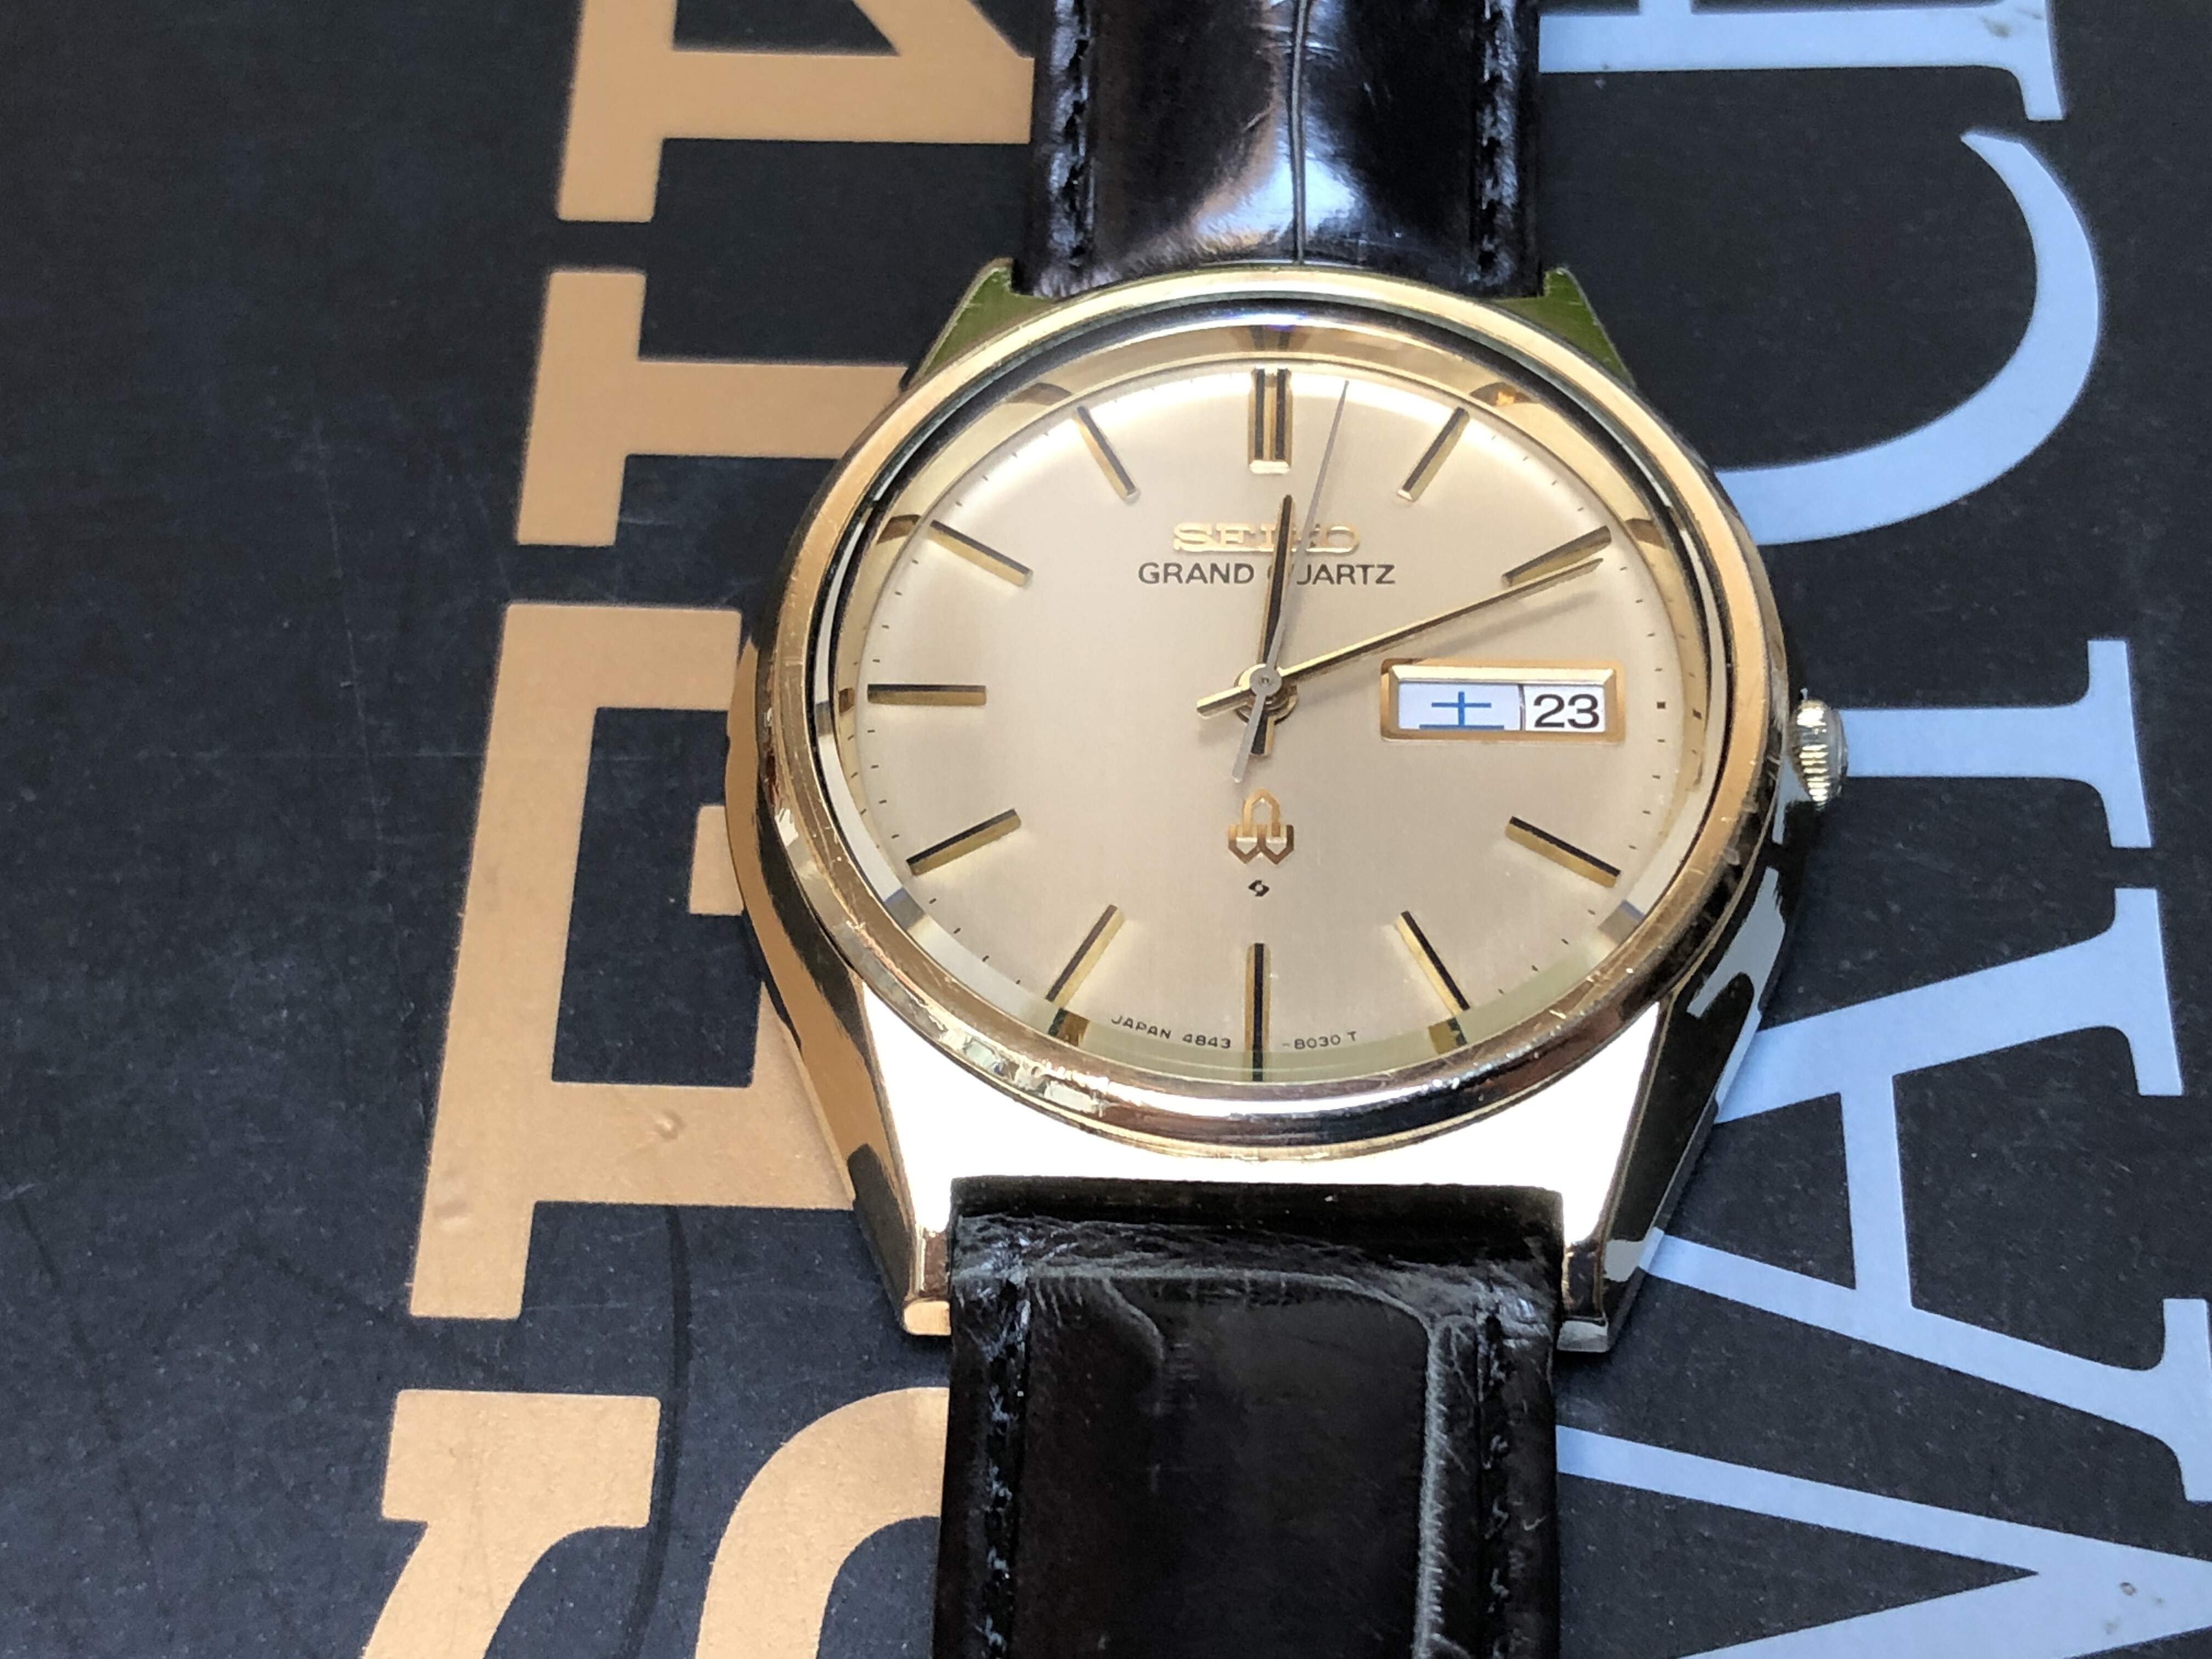 Seiko Grand Quartz 4843-8040 CG (Sold)